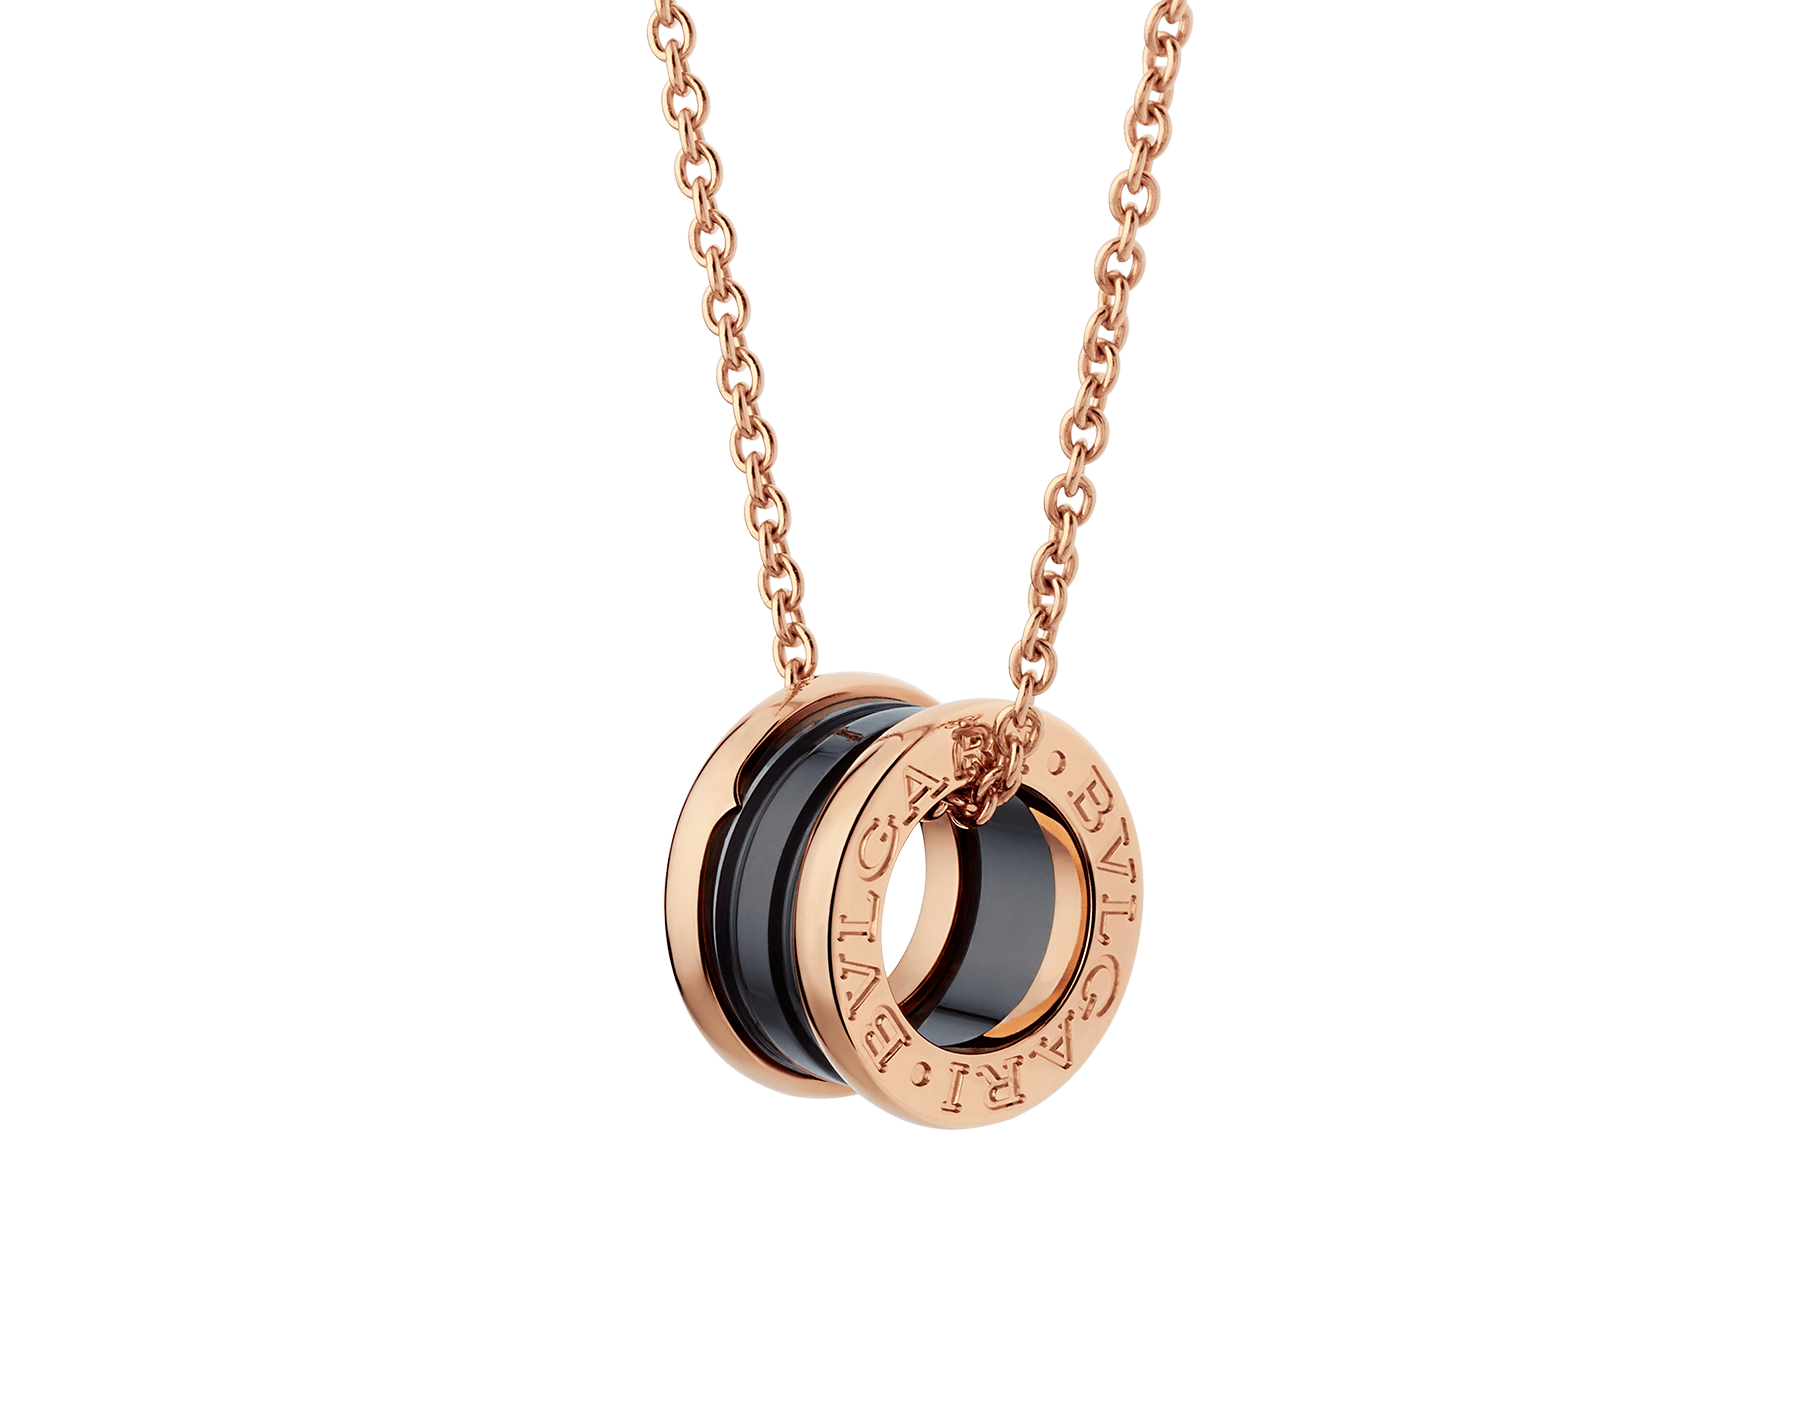 B.zero1 necklace with 18 kt rose gold chain and with 18 kt rose gold and black ceramic pendant. 346083 image 1